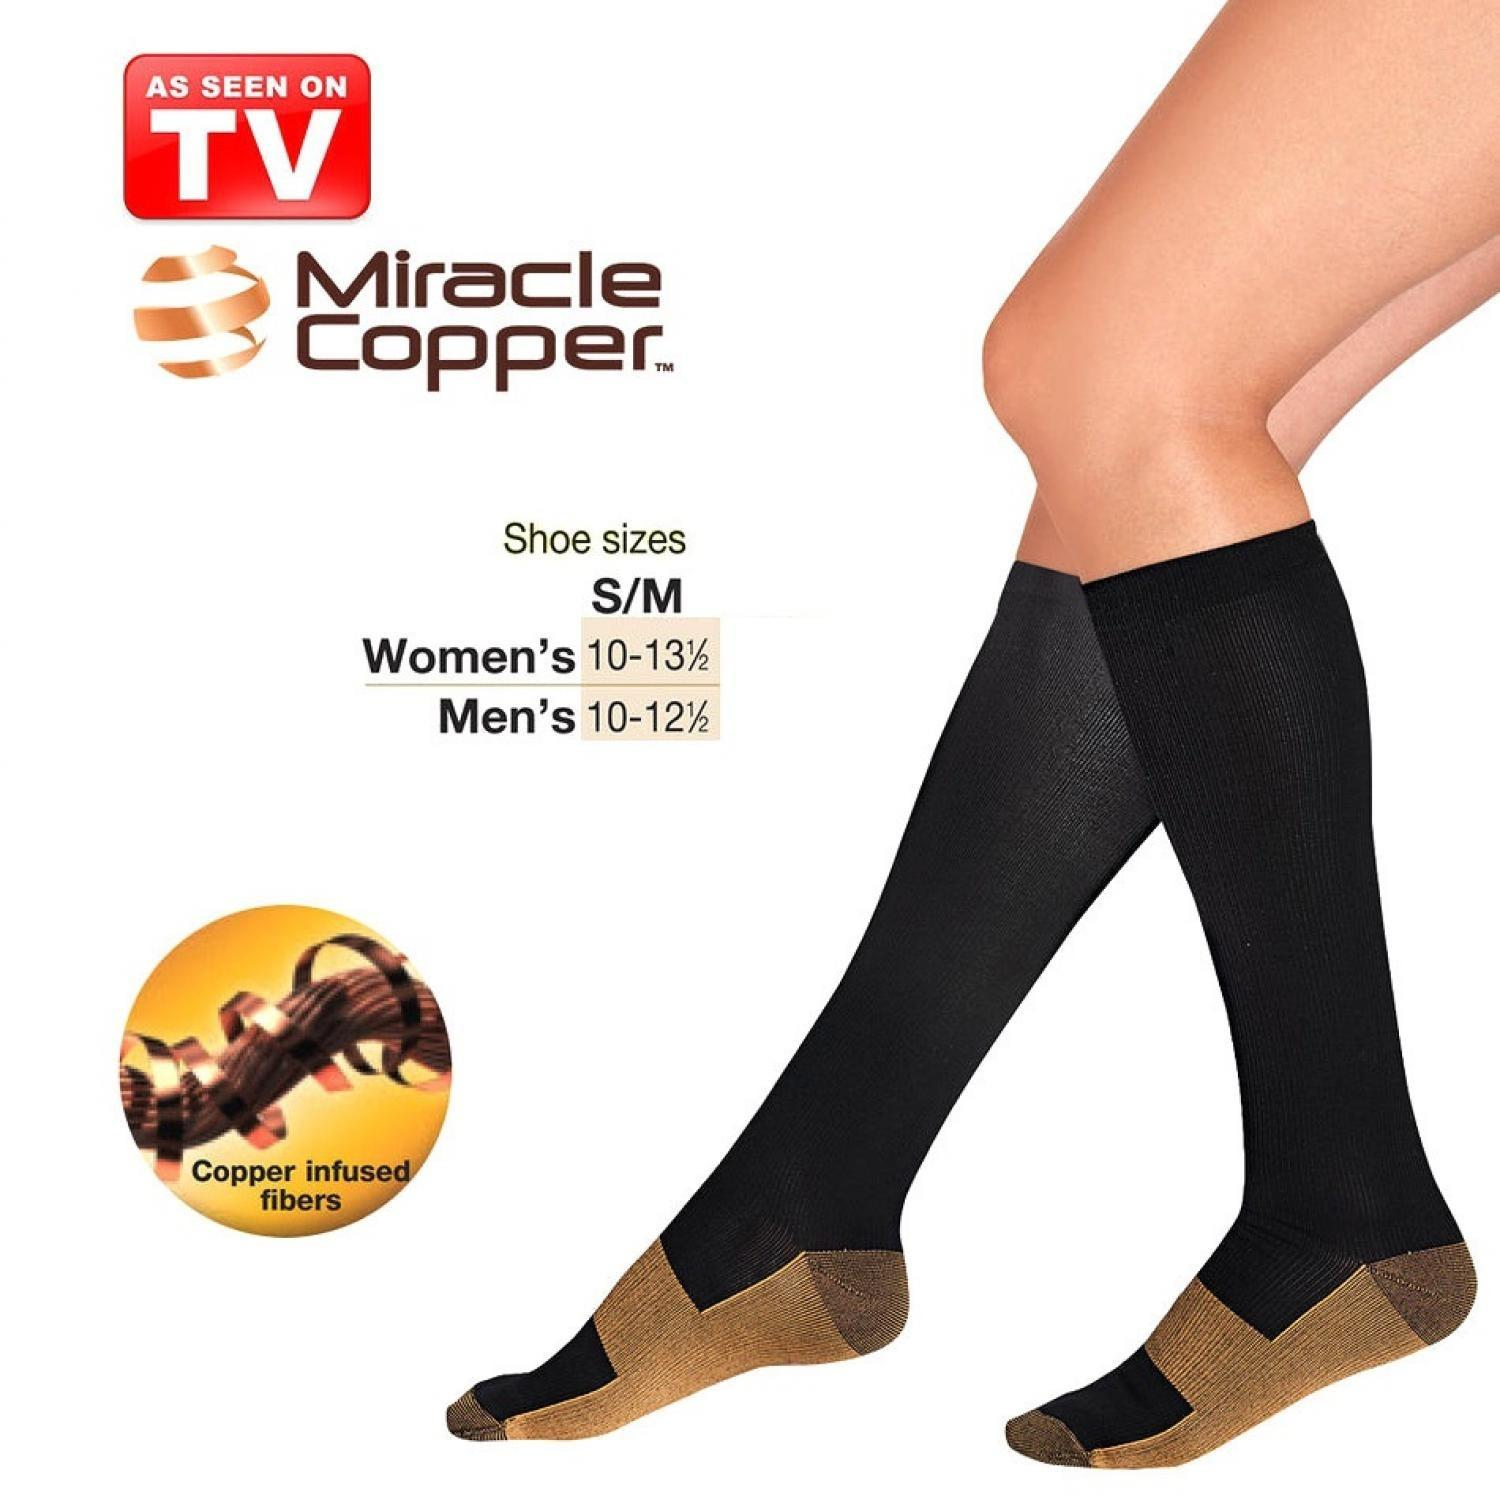 Miracle Copper Socks Stovepipe Healthy S/M Size Kaos Kaki Kesehatan s7260 - Black